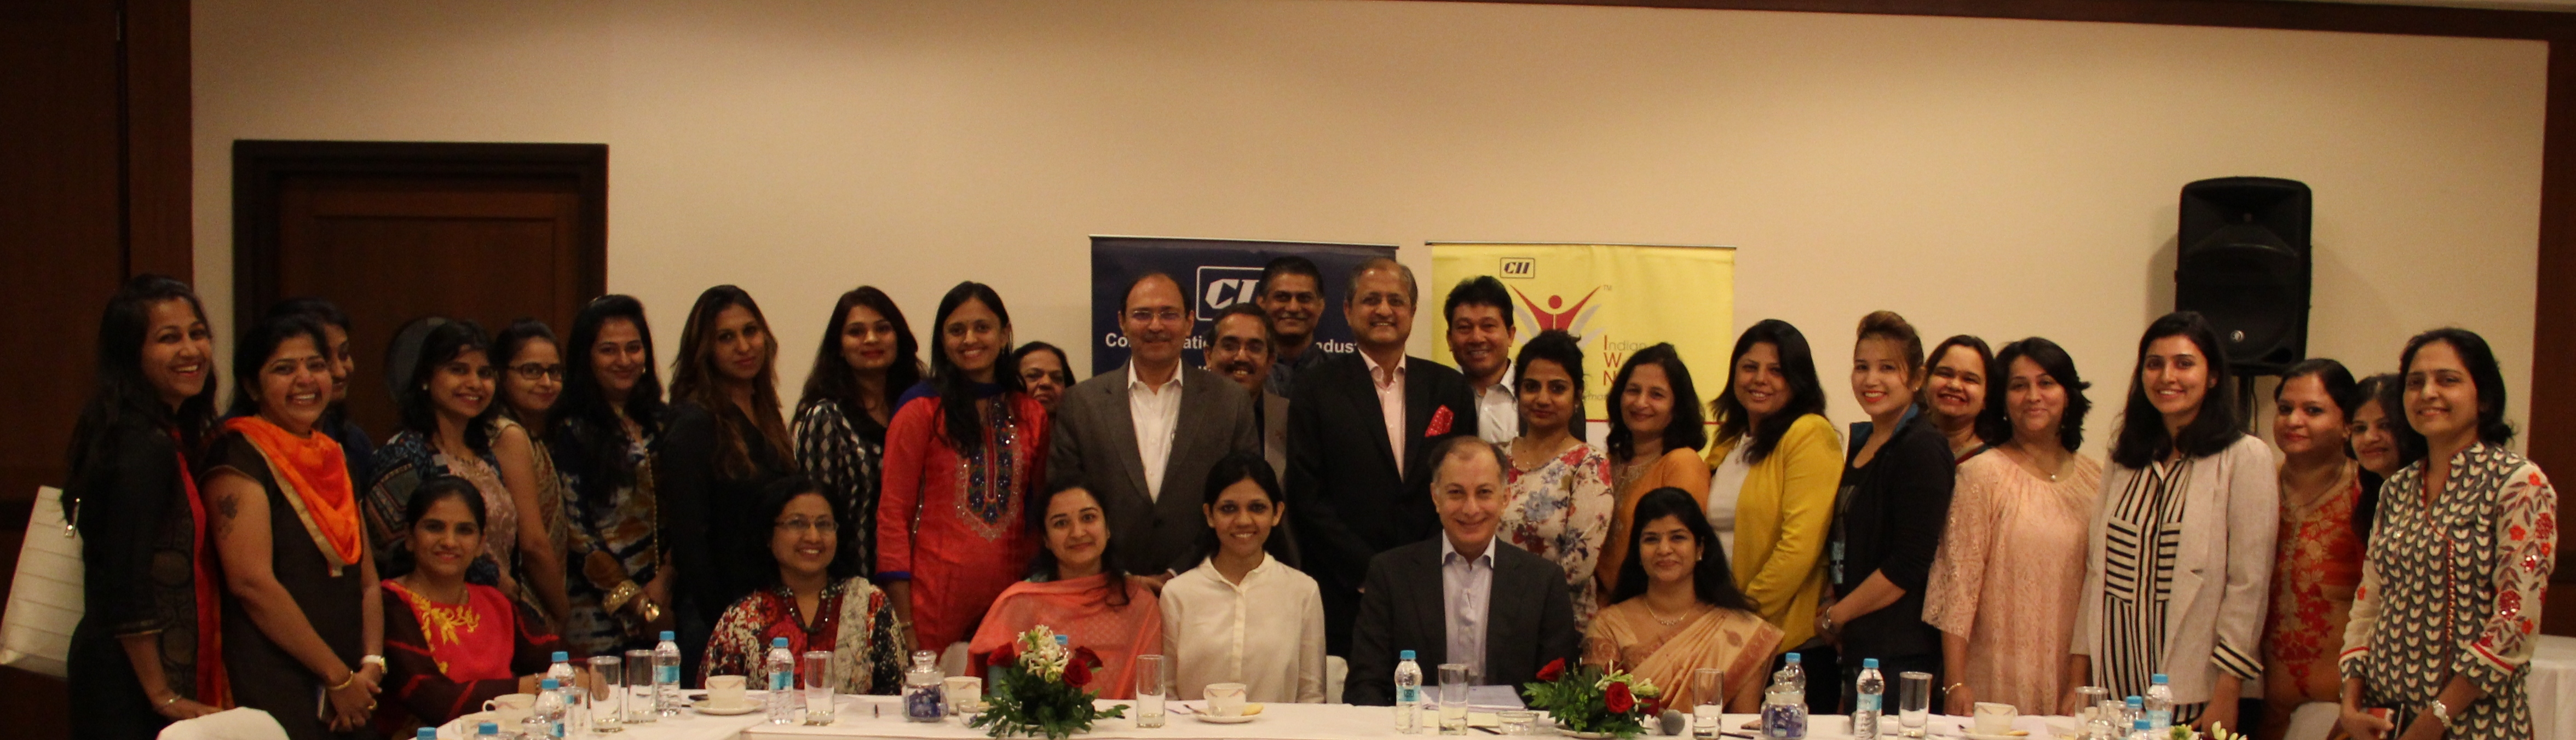 CII President Dr Naushad Forbes - Interaction with IWN Members